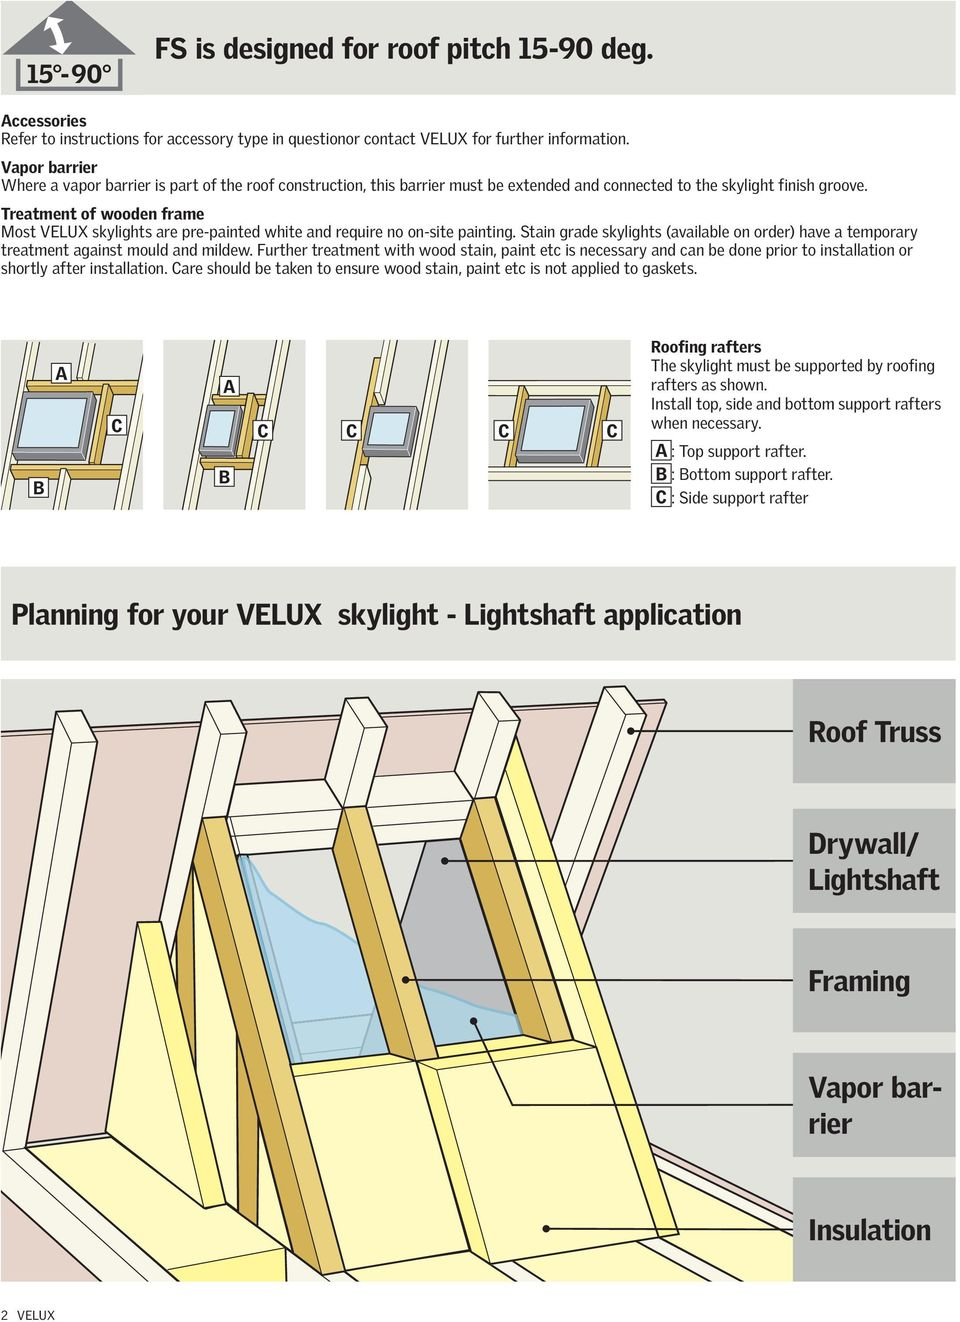 Groovy Fs Deck Mounted Skylight Installation Instructions Pdf Wiring Digital Resources Funapmognl